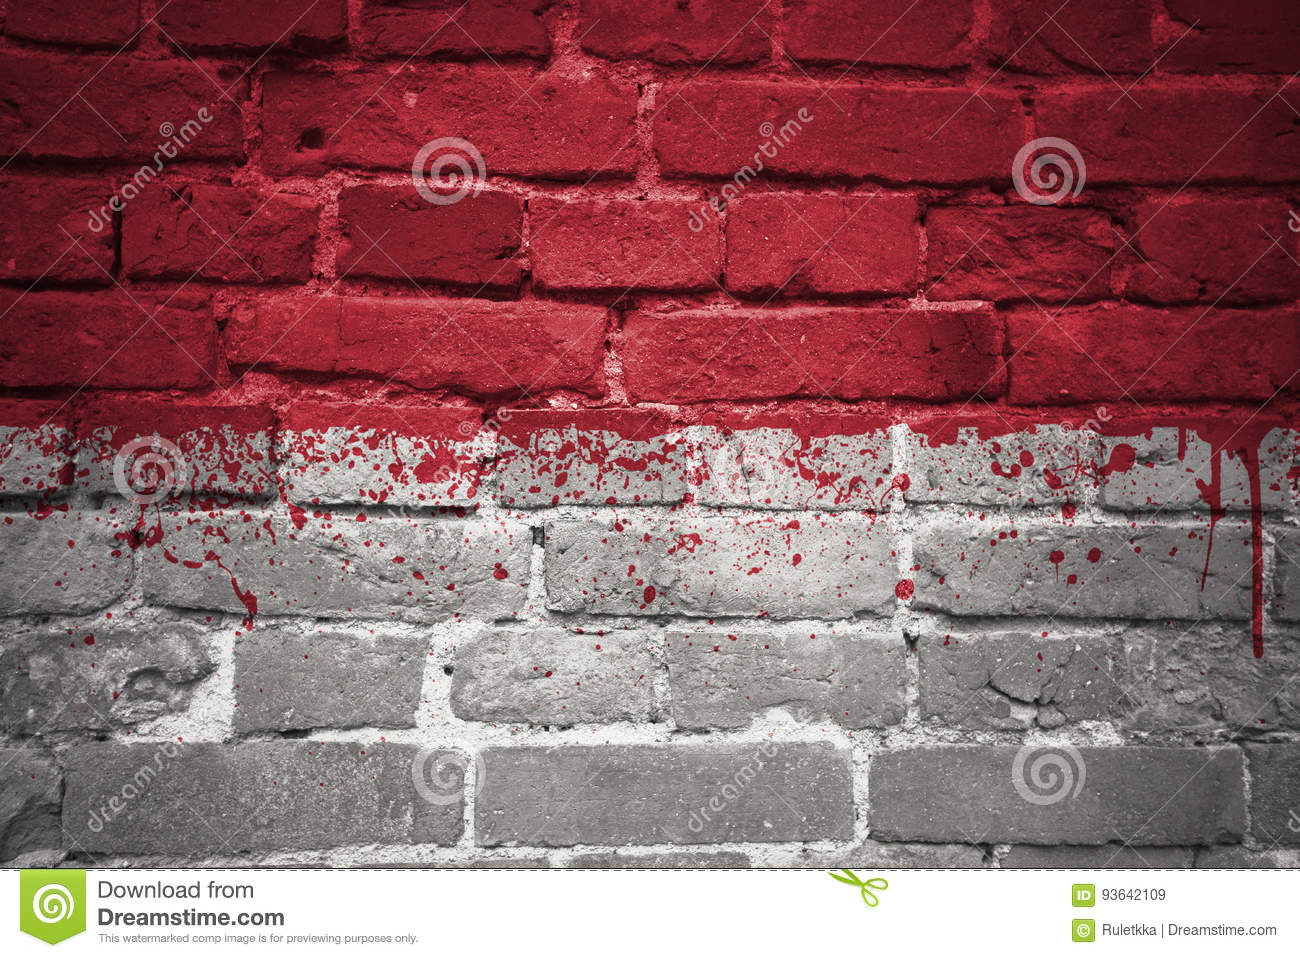 Painted national flag of indonesia on a brick wall